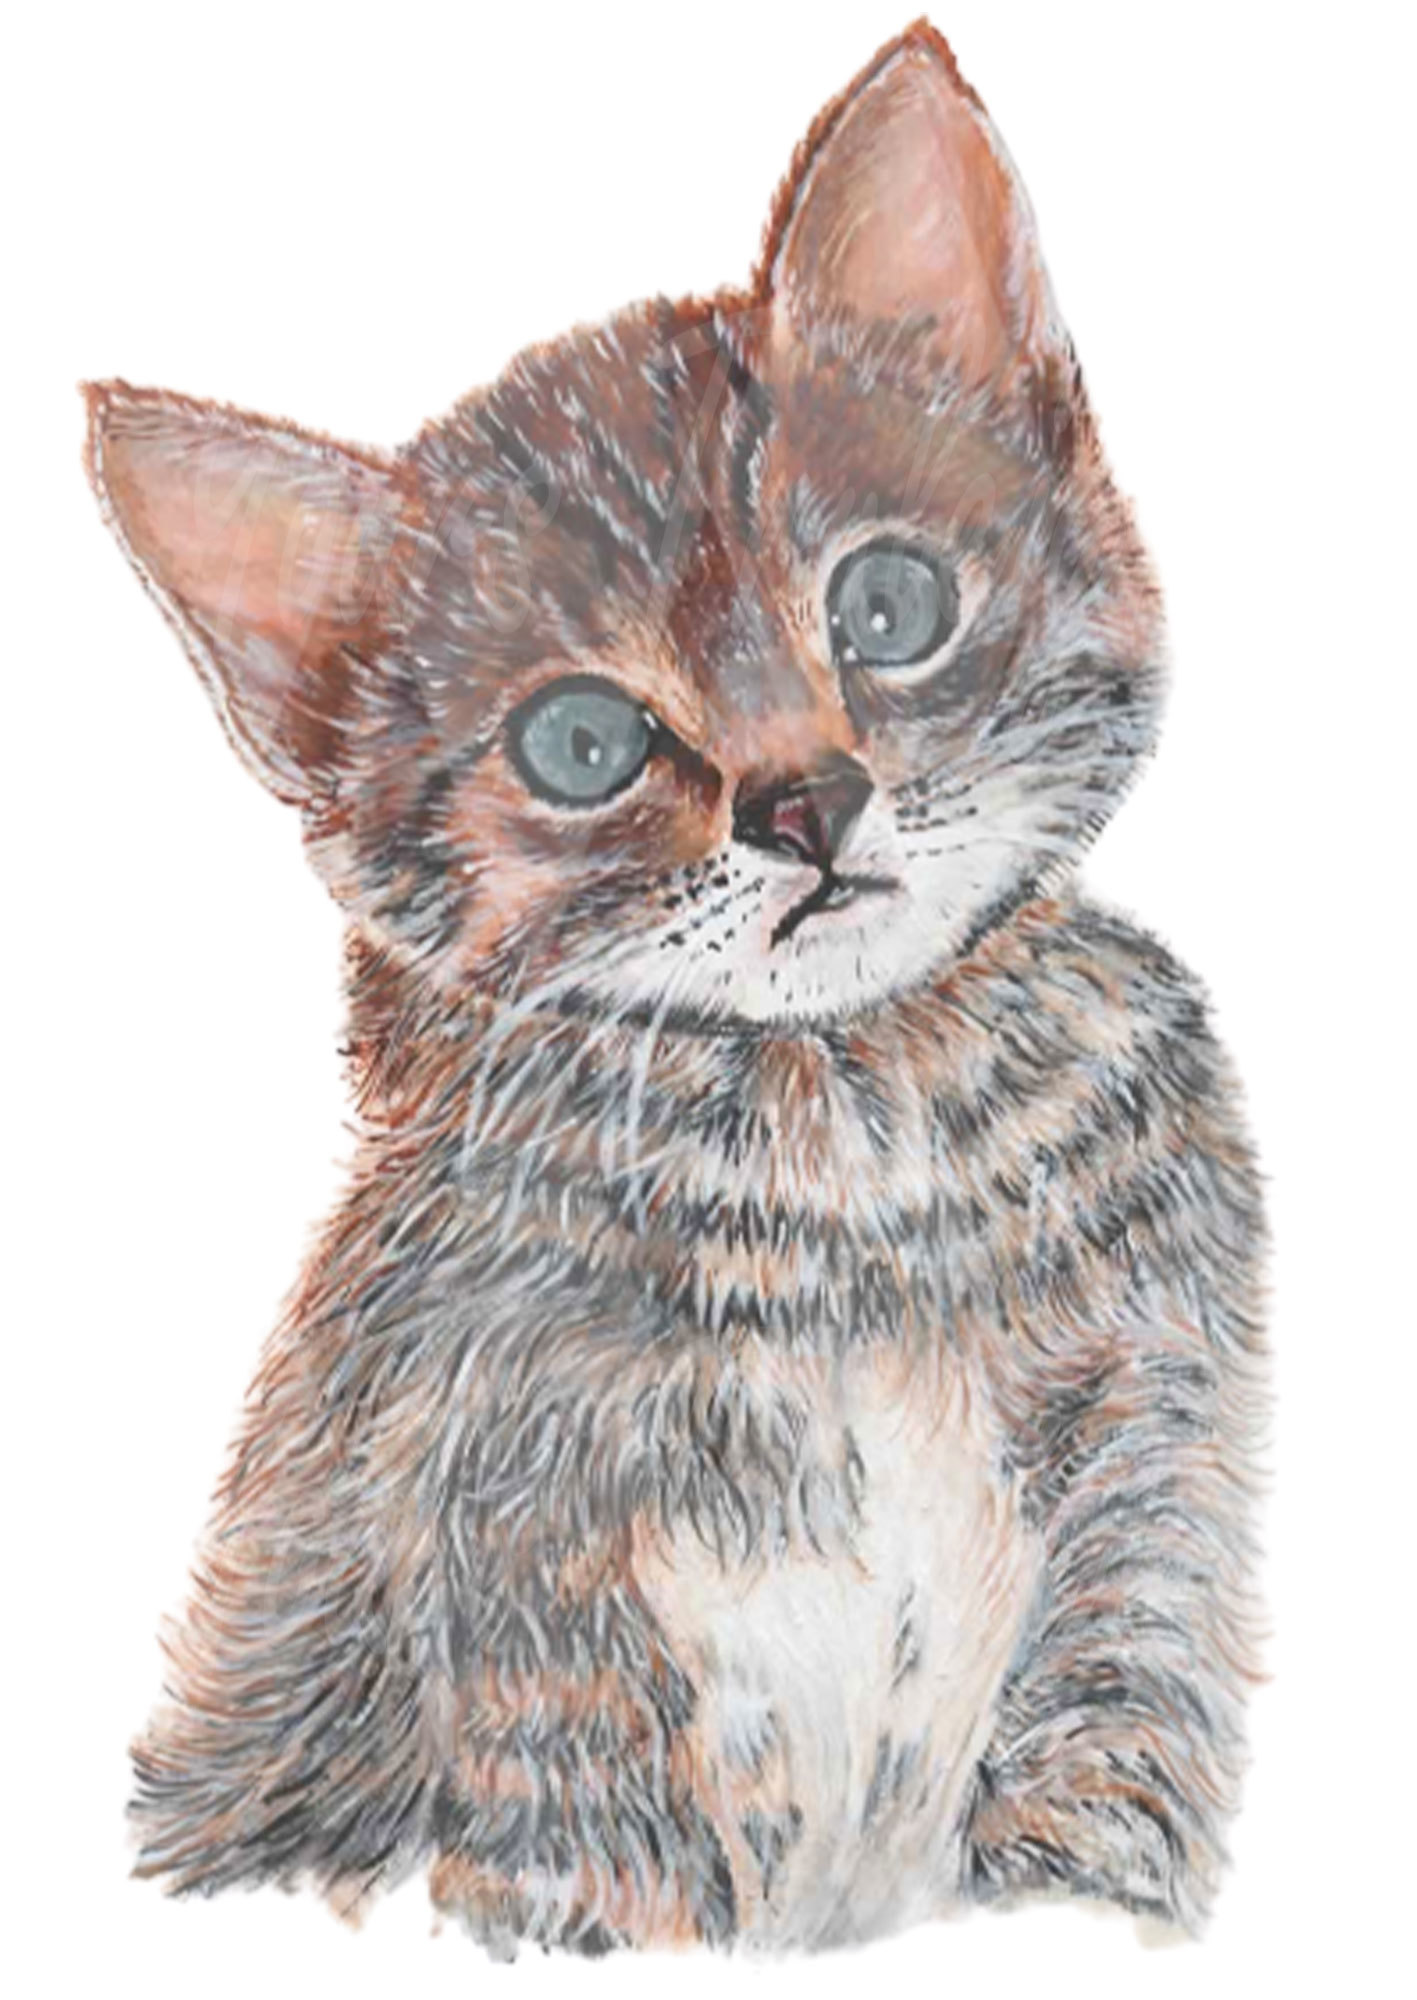 Cute Kitten - Personal Use License